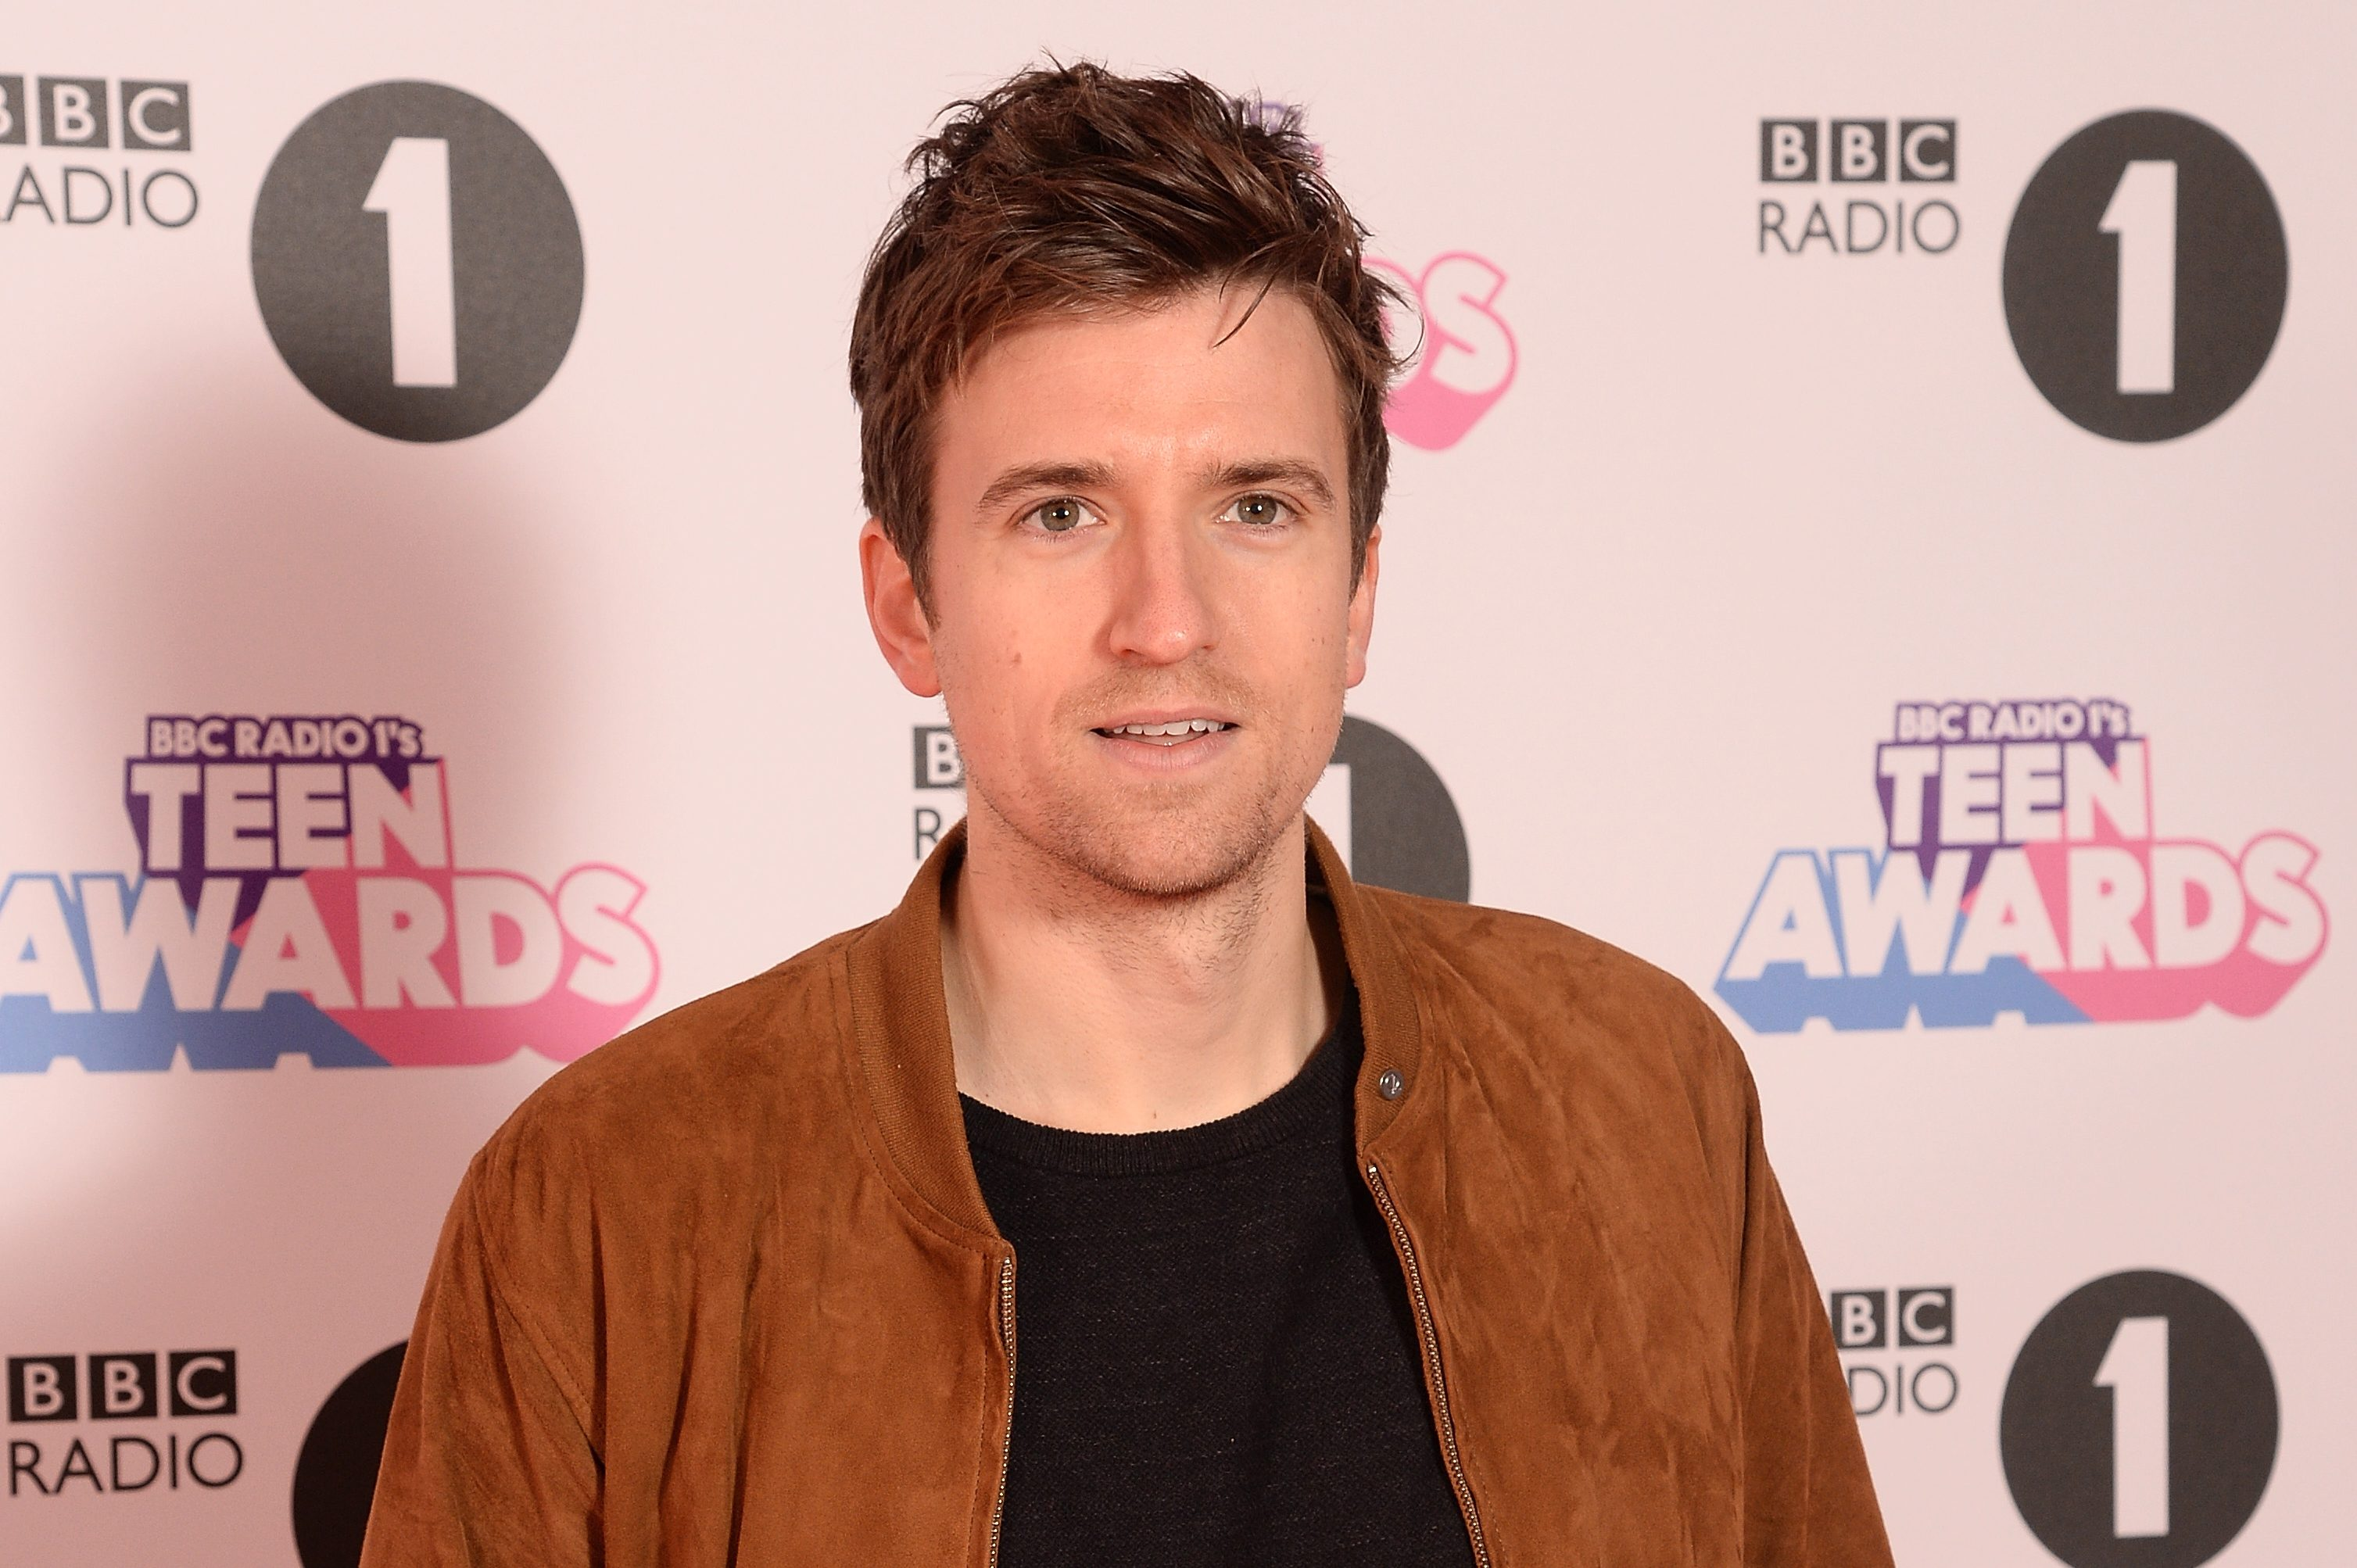 Greg James age, net worth and girlfriends as he replaces Nick Grimshaw on Radio 1 Breakfast Show